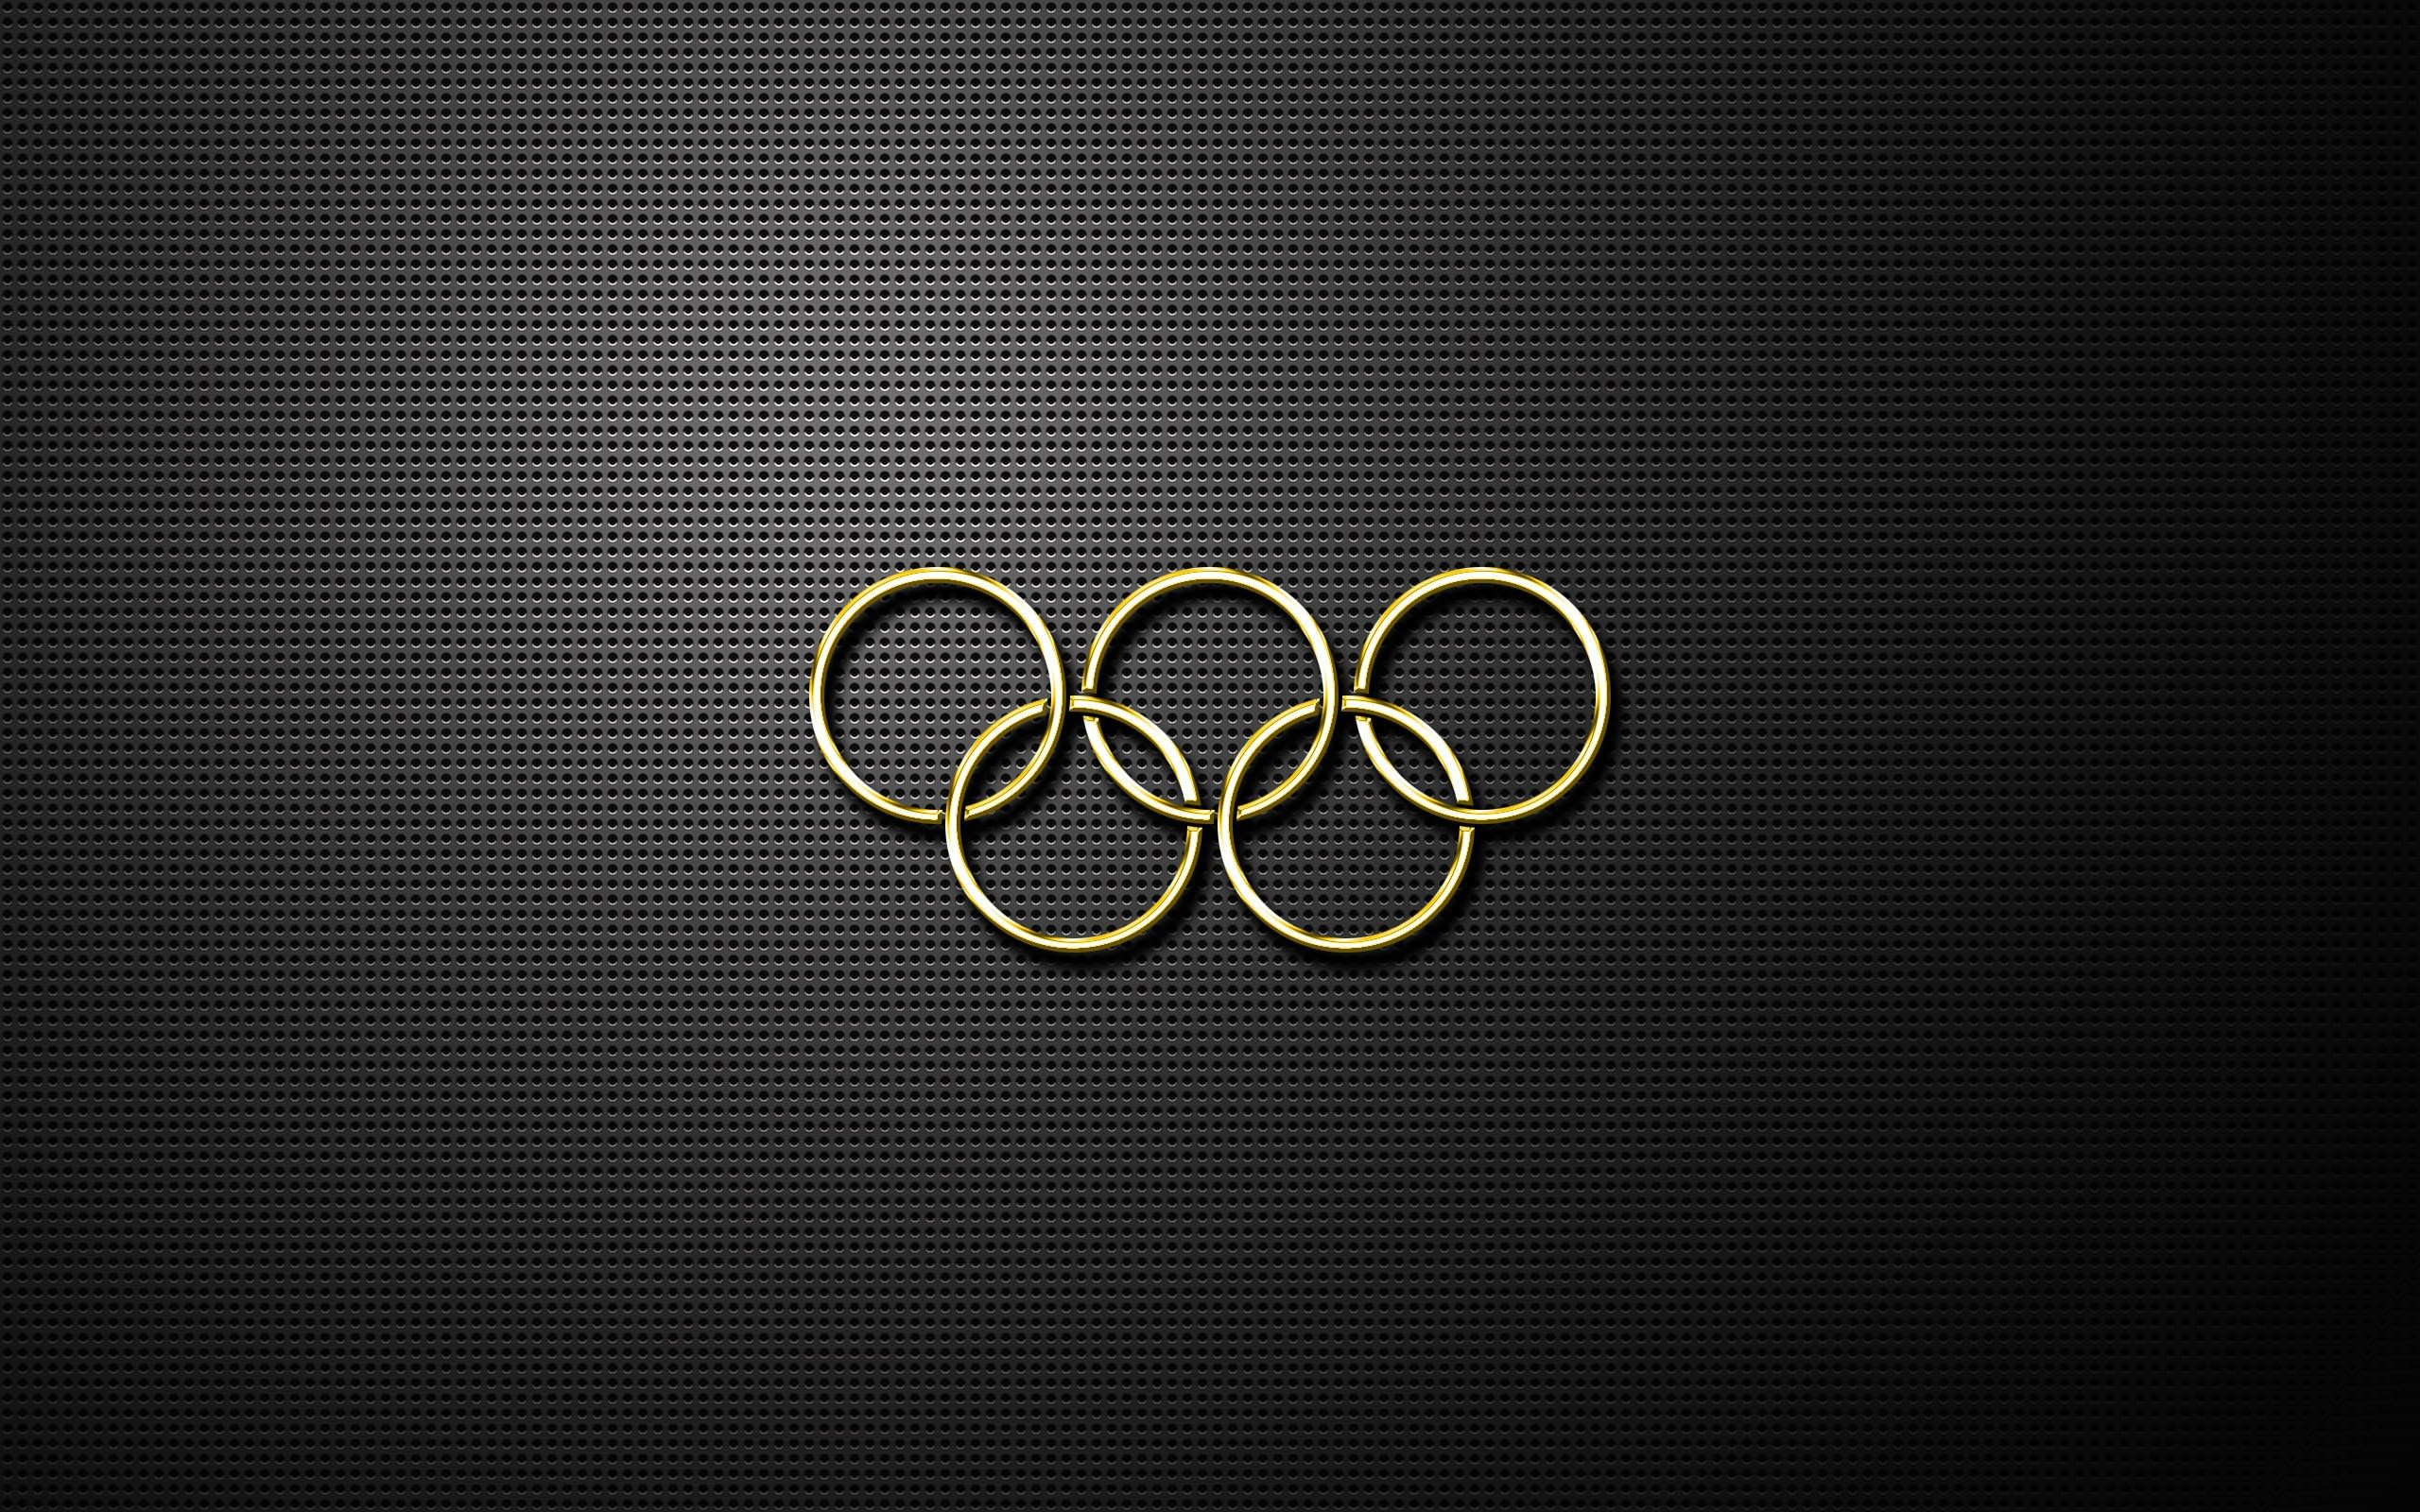 2560x1600 Olympics Wallpapers Group (77+)